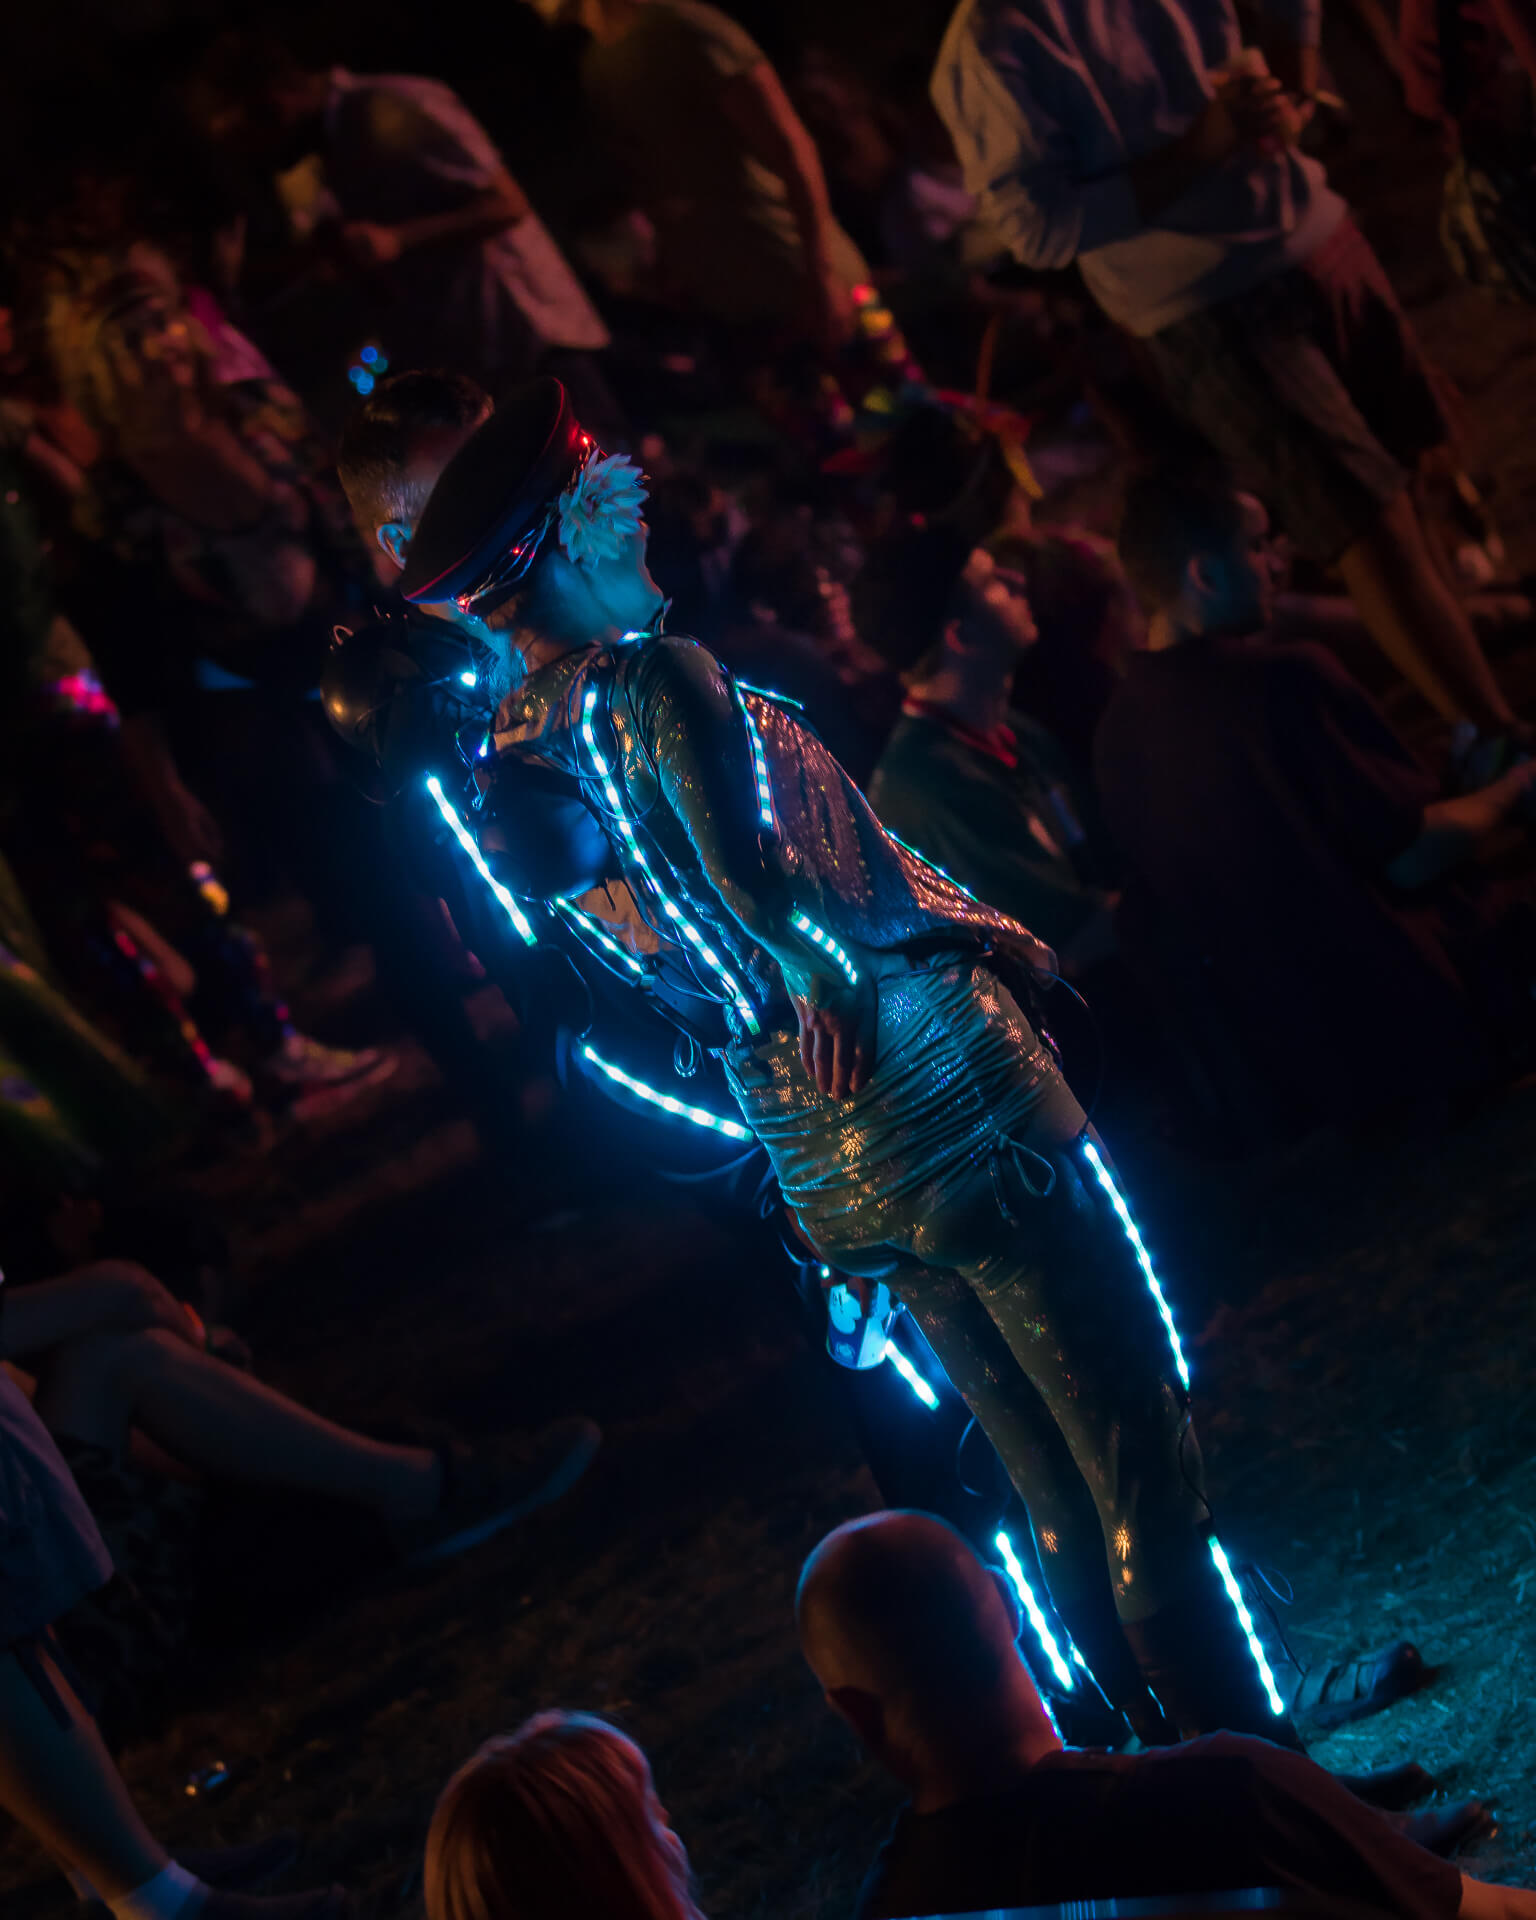 A full length body image of two festival goers in the main arena at Nozstock as they watch proceedings. Taken at night the pair wear outfits with lights sewn into them so as they appear illuminated. The crowd have given them room so they stand out.